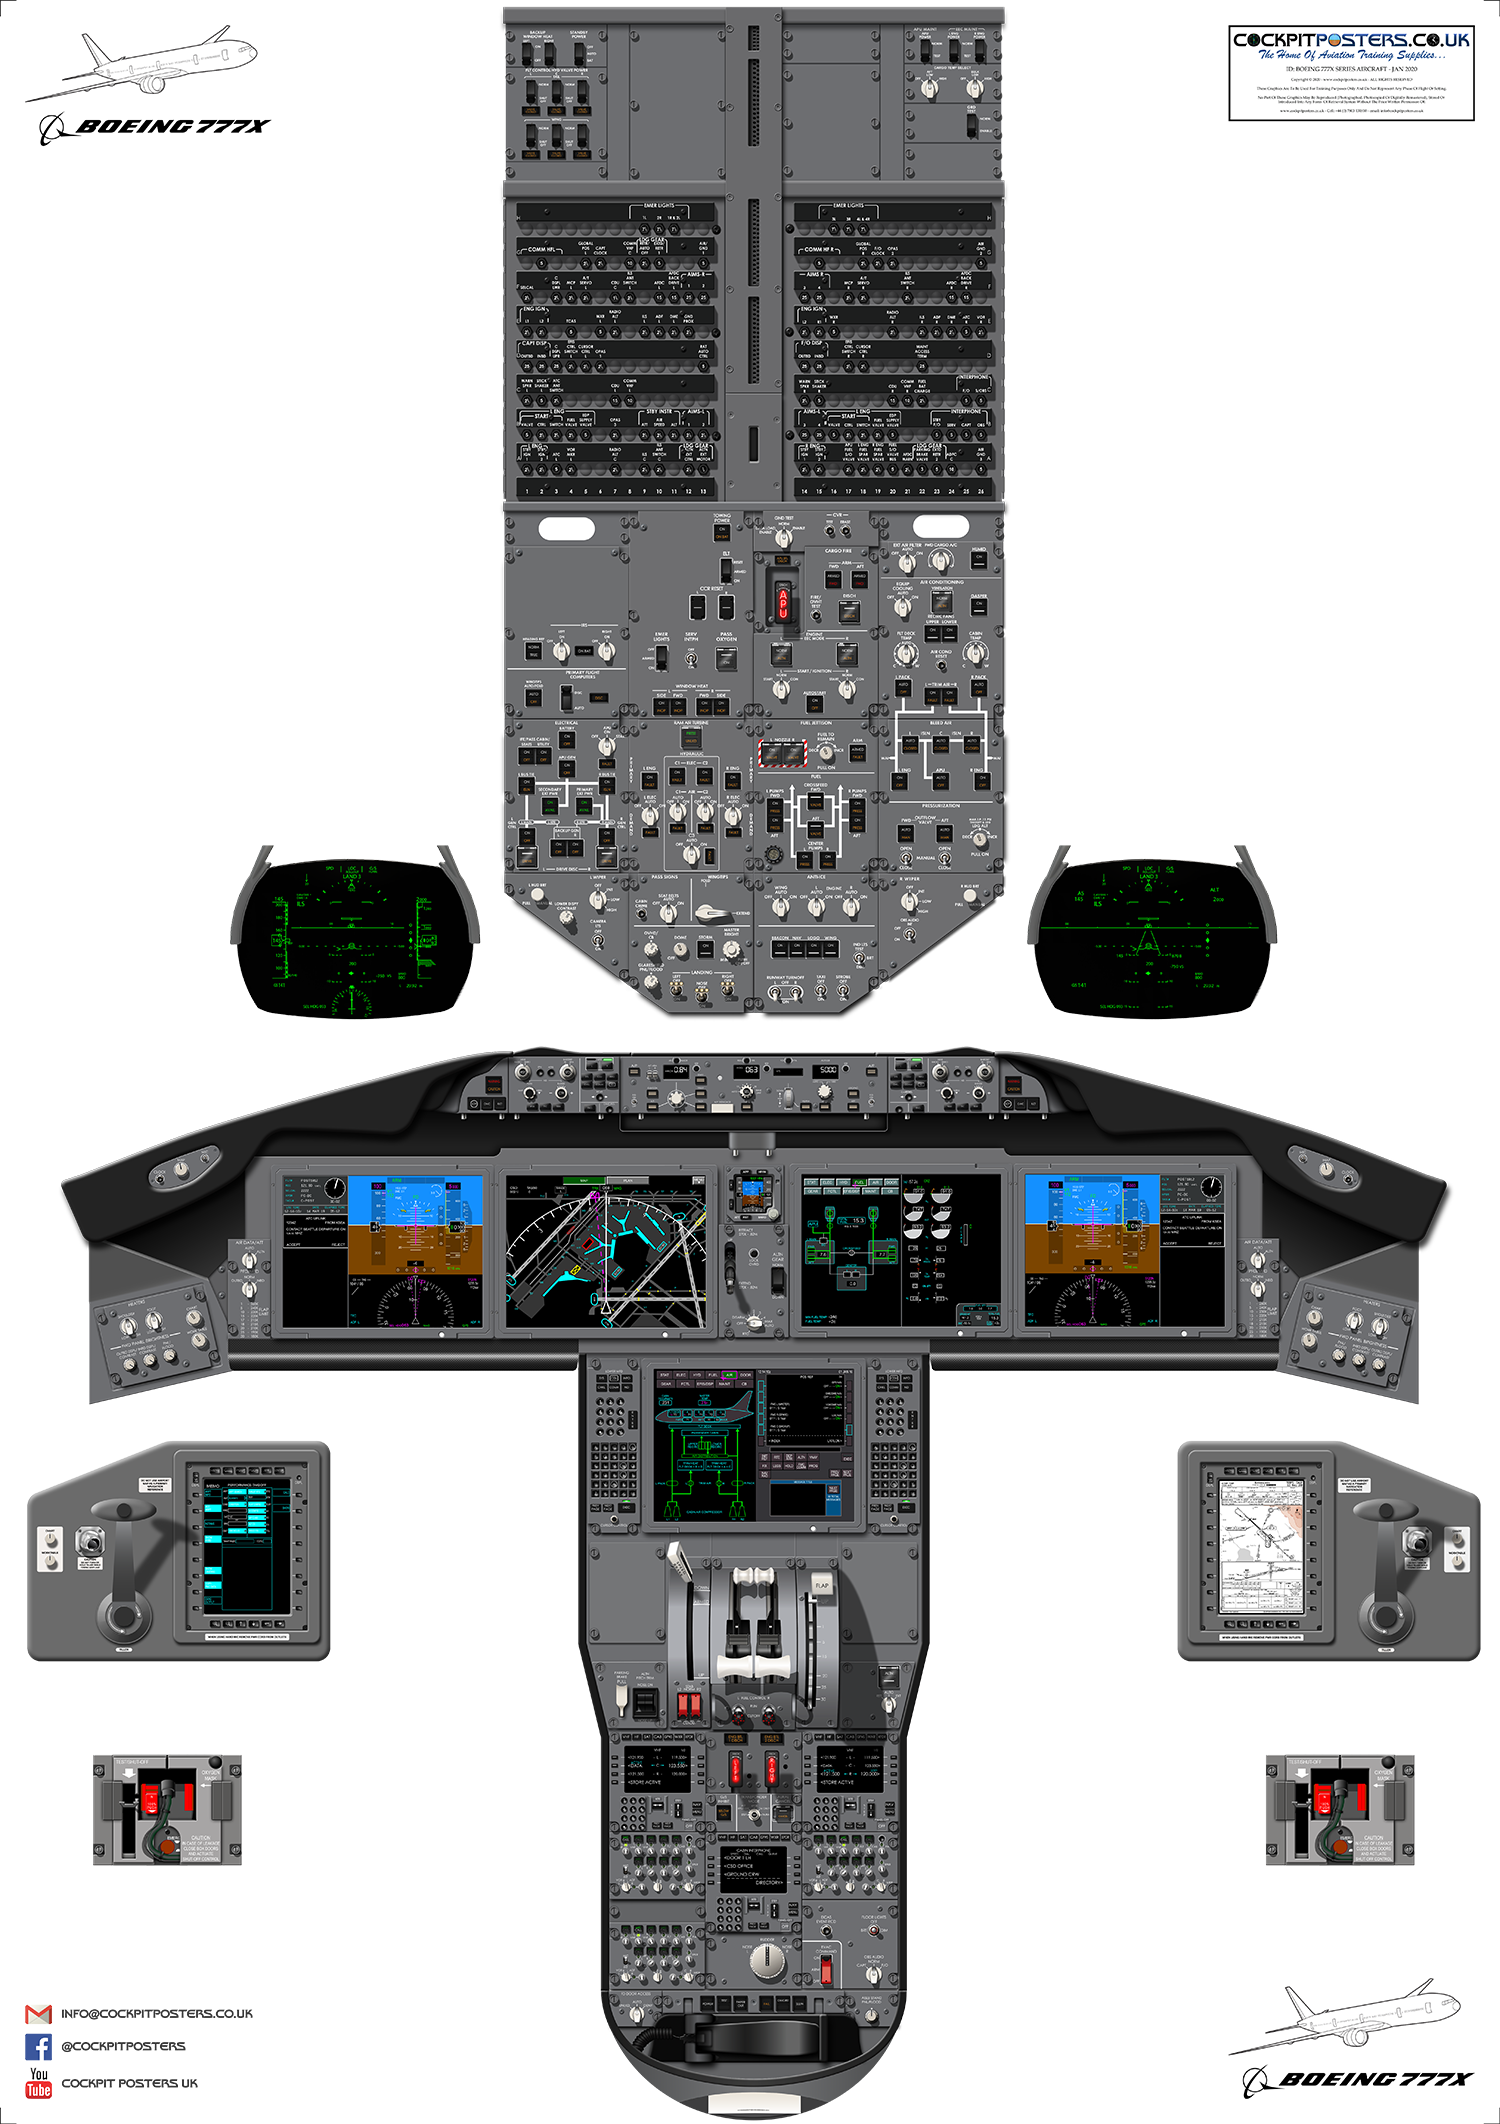 Boeing 737-800 NG Cockpit Poster 35/%-100/% Scale from £29.85